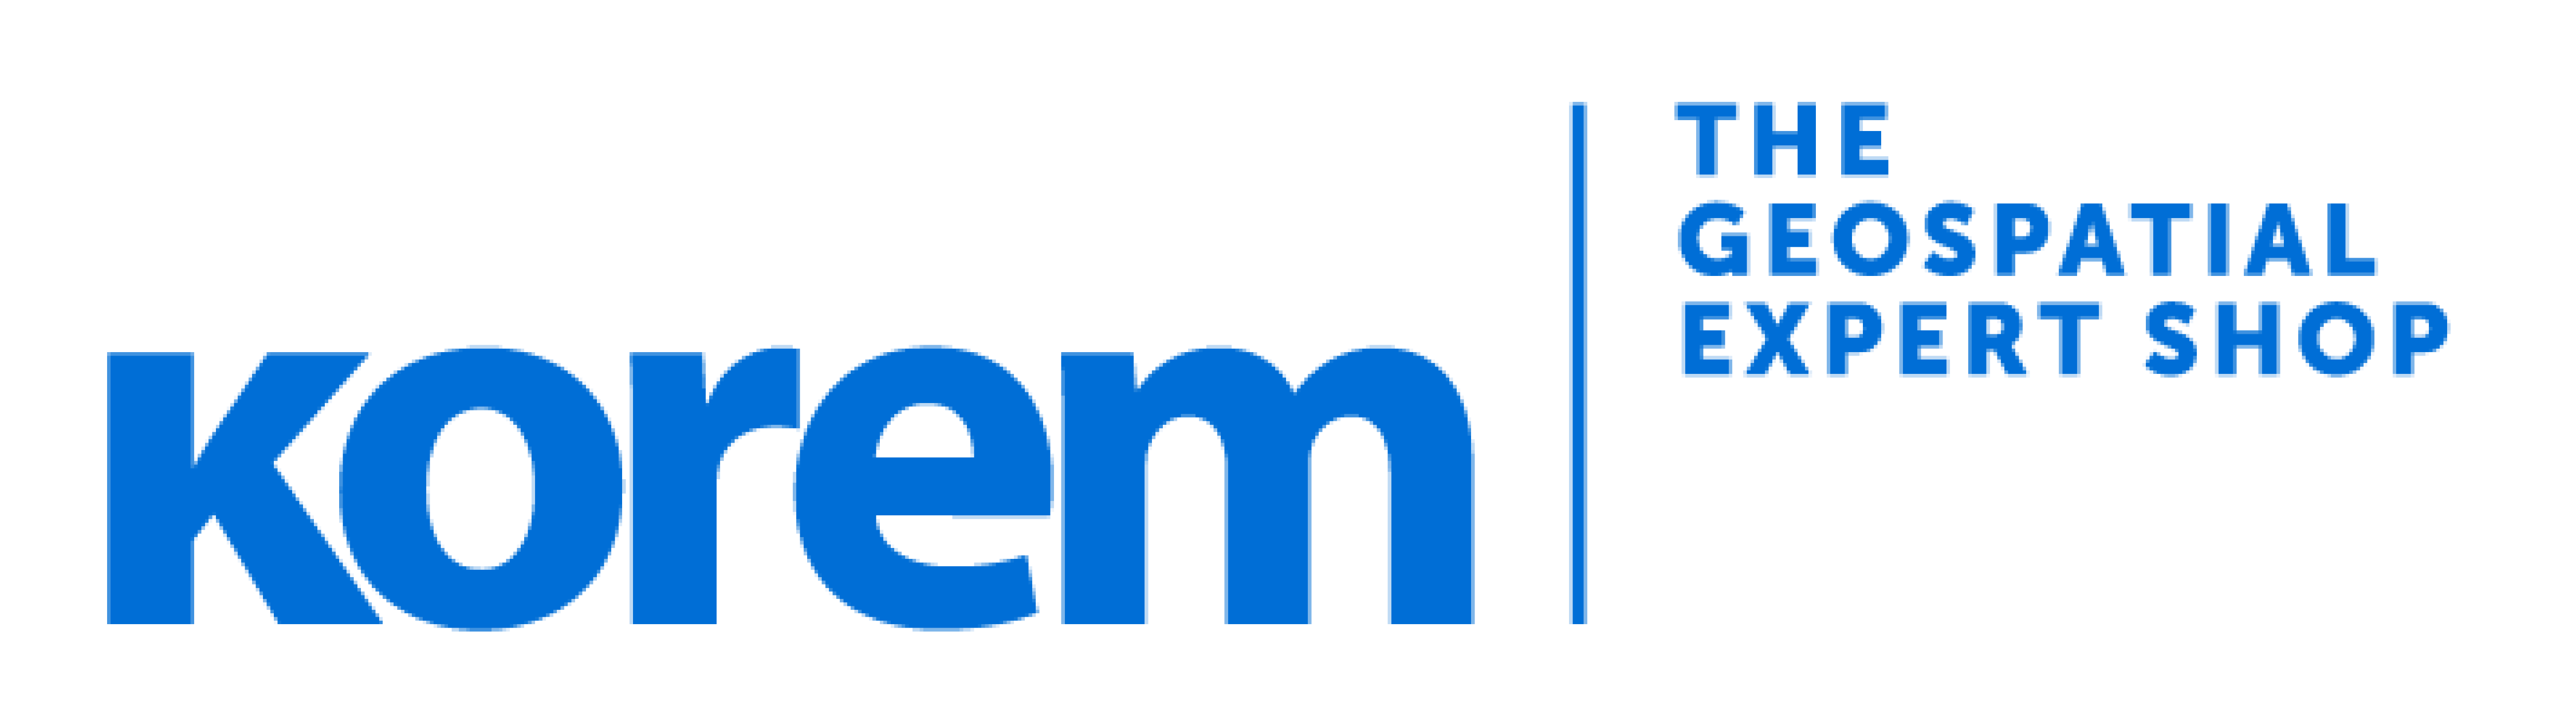 The logo of the company Korem